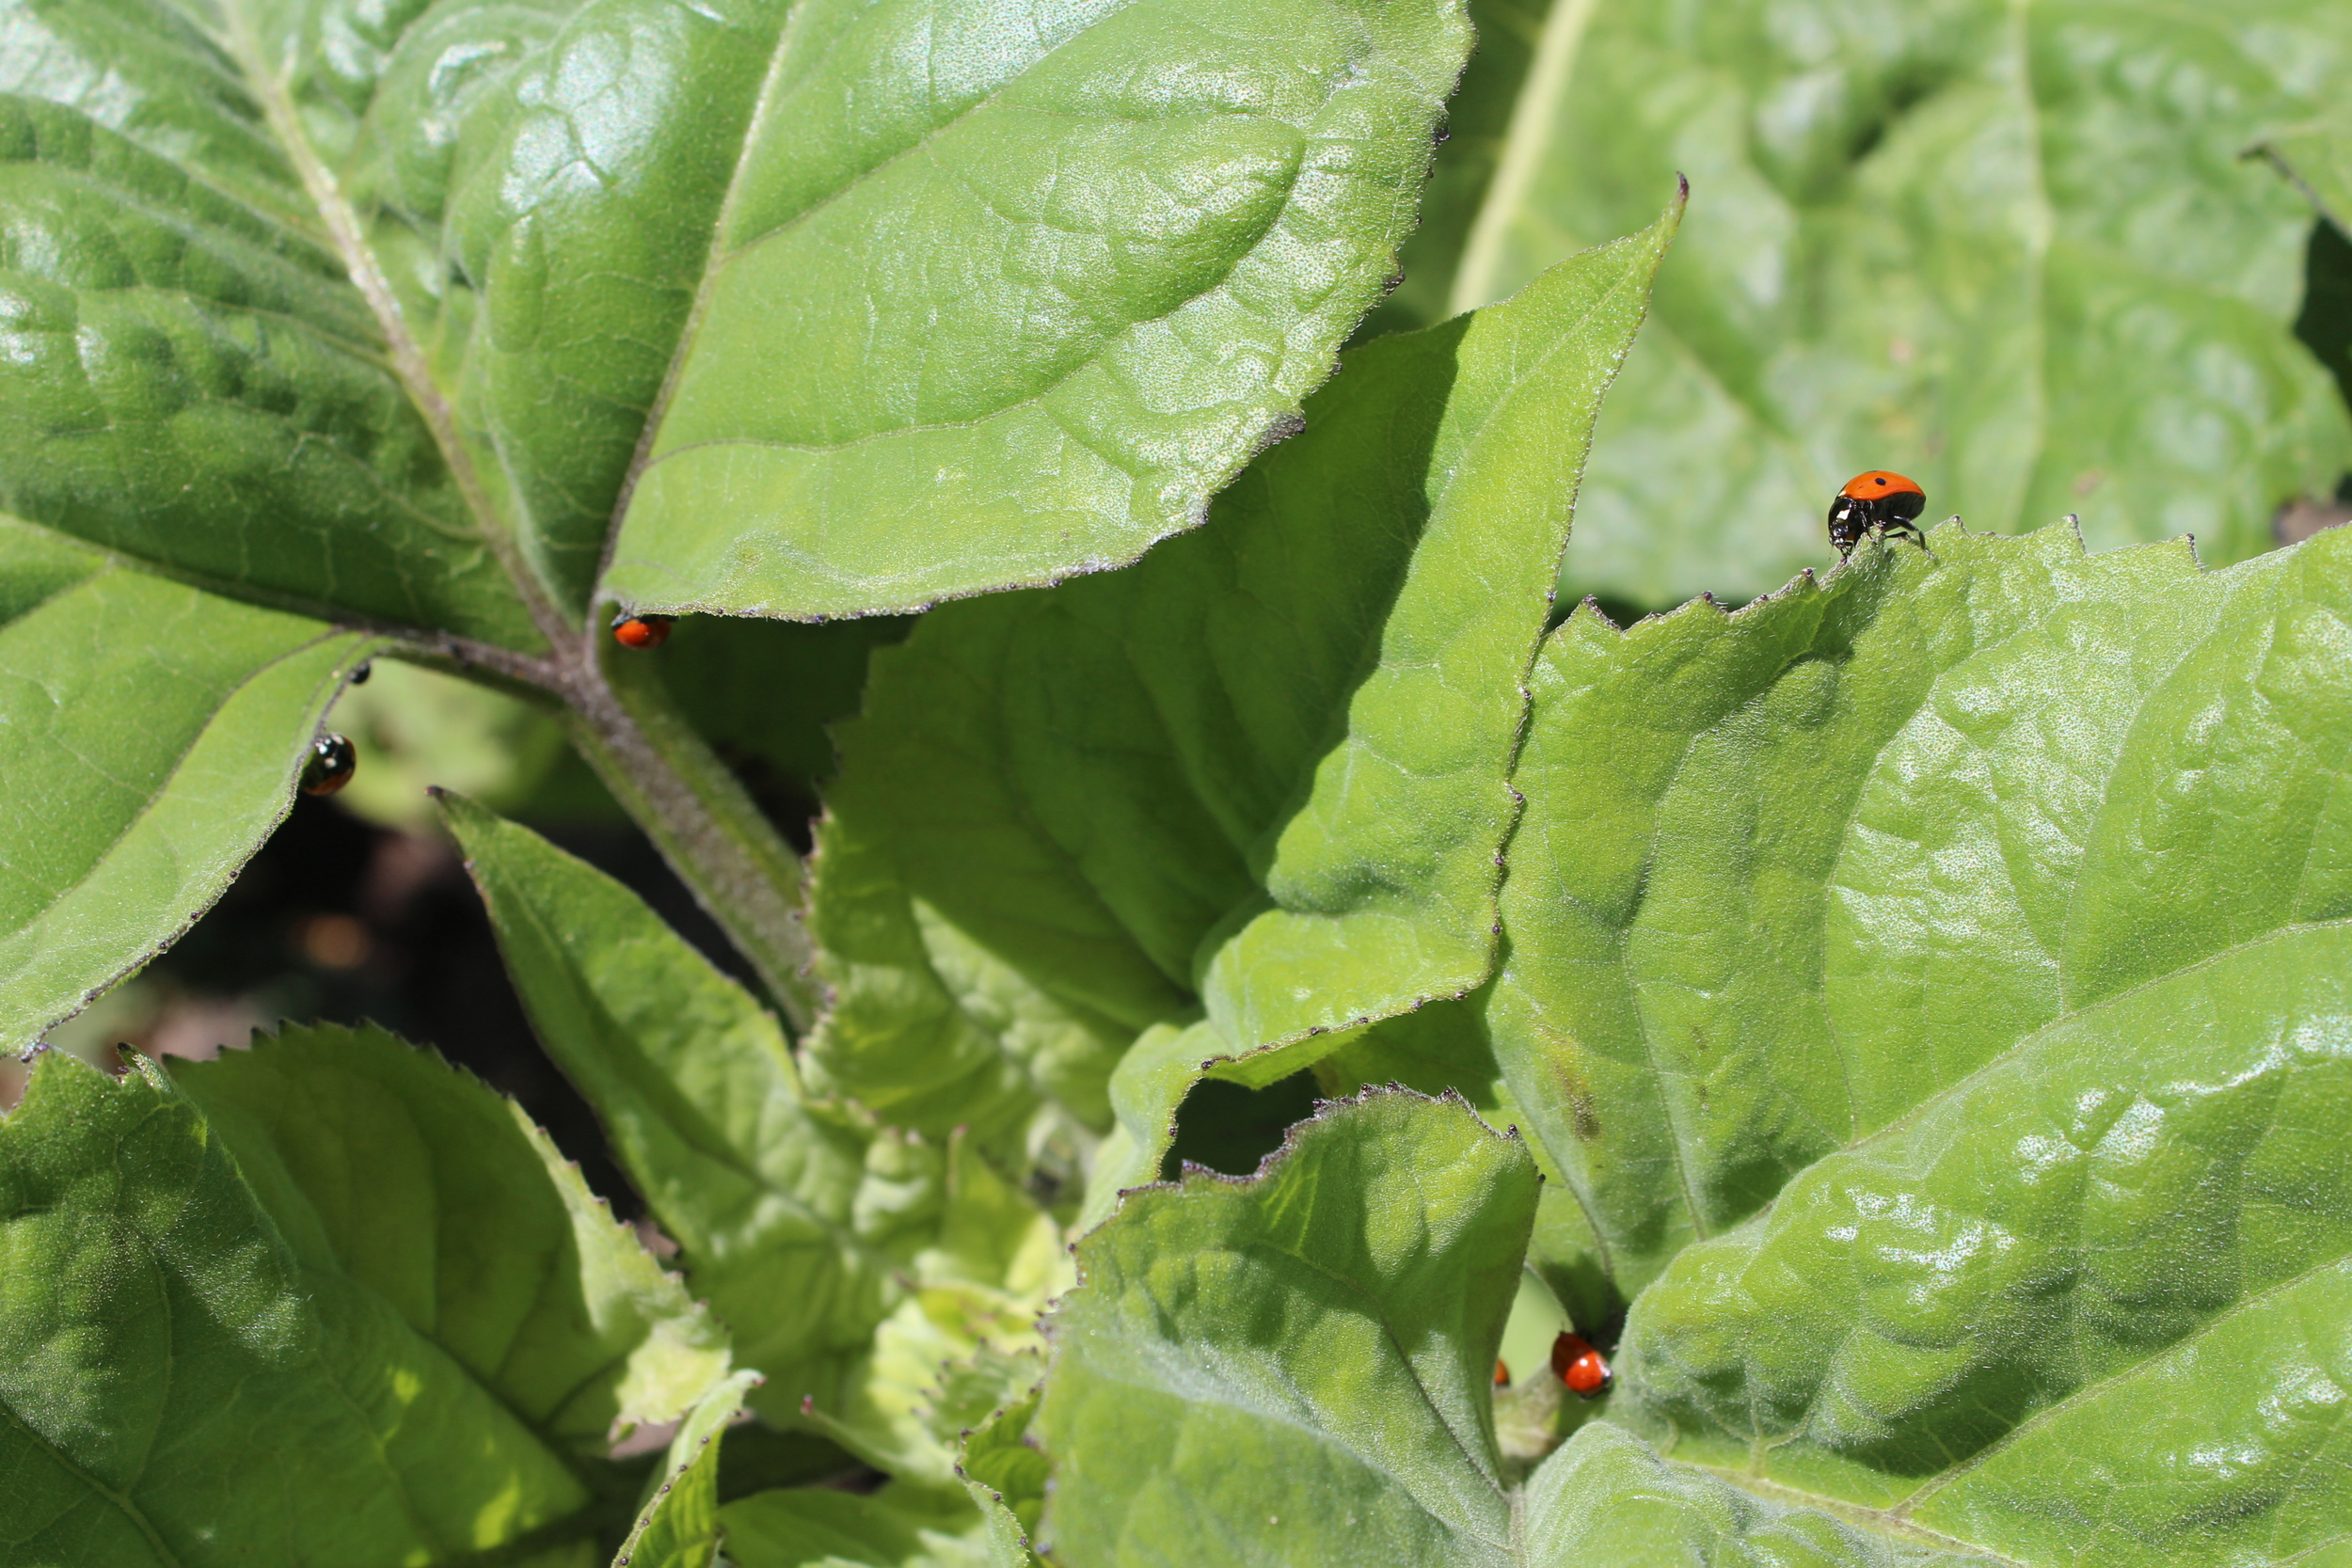 Five or more ladybugs on a sunflower plant!